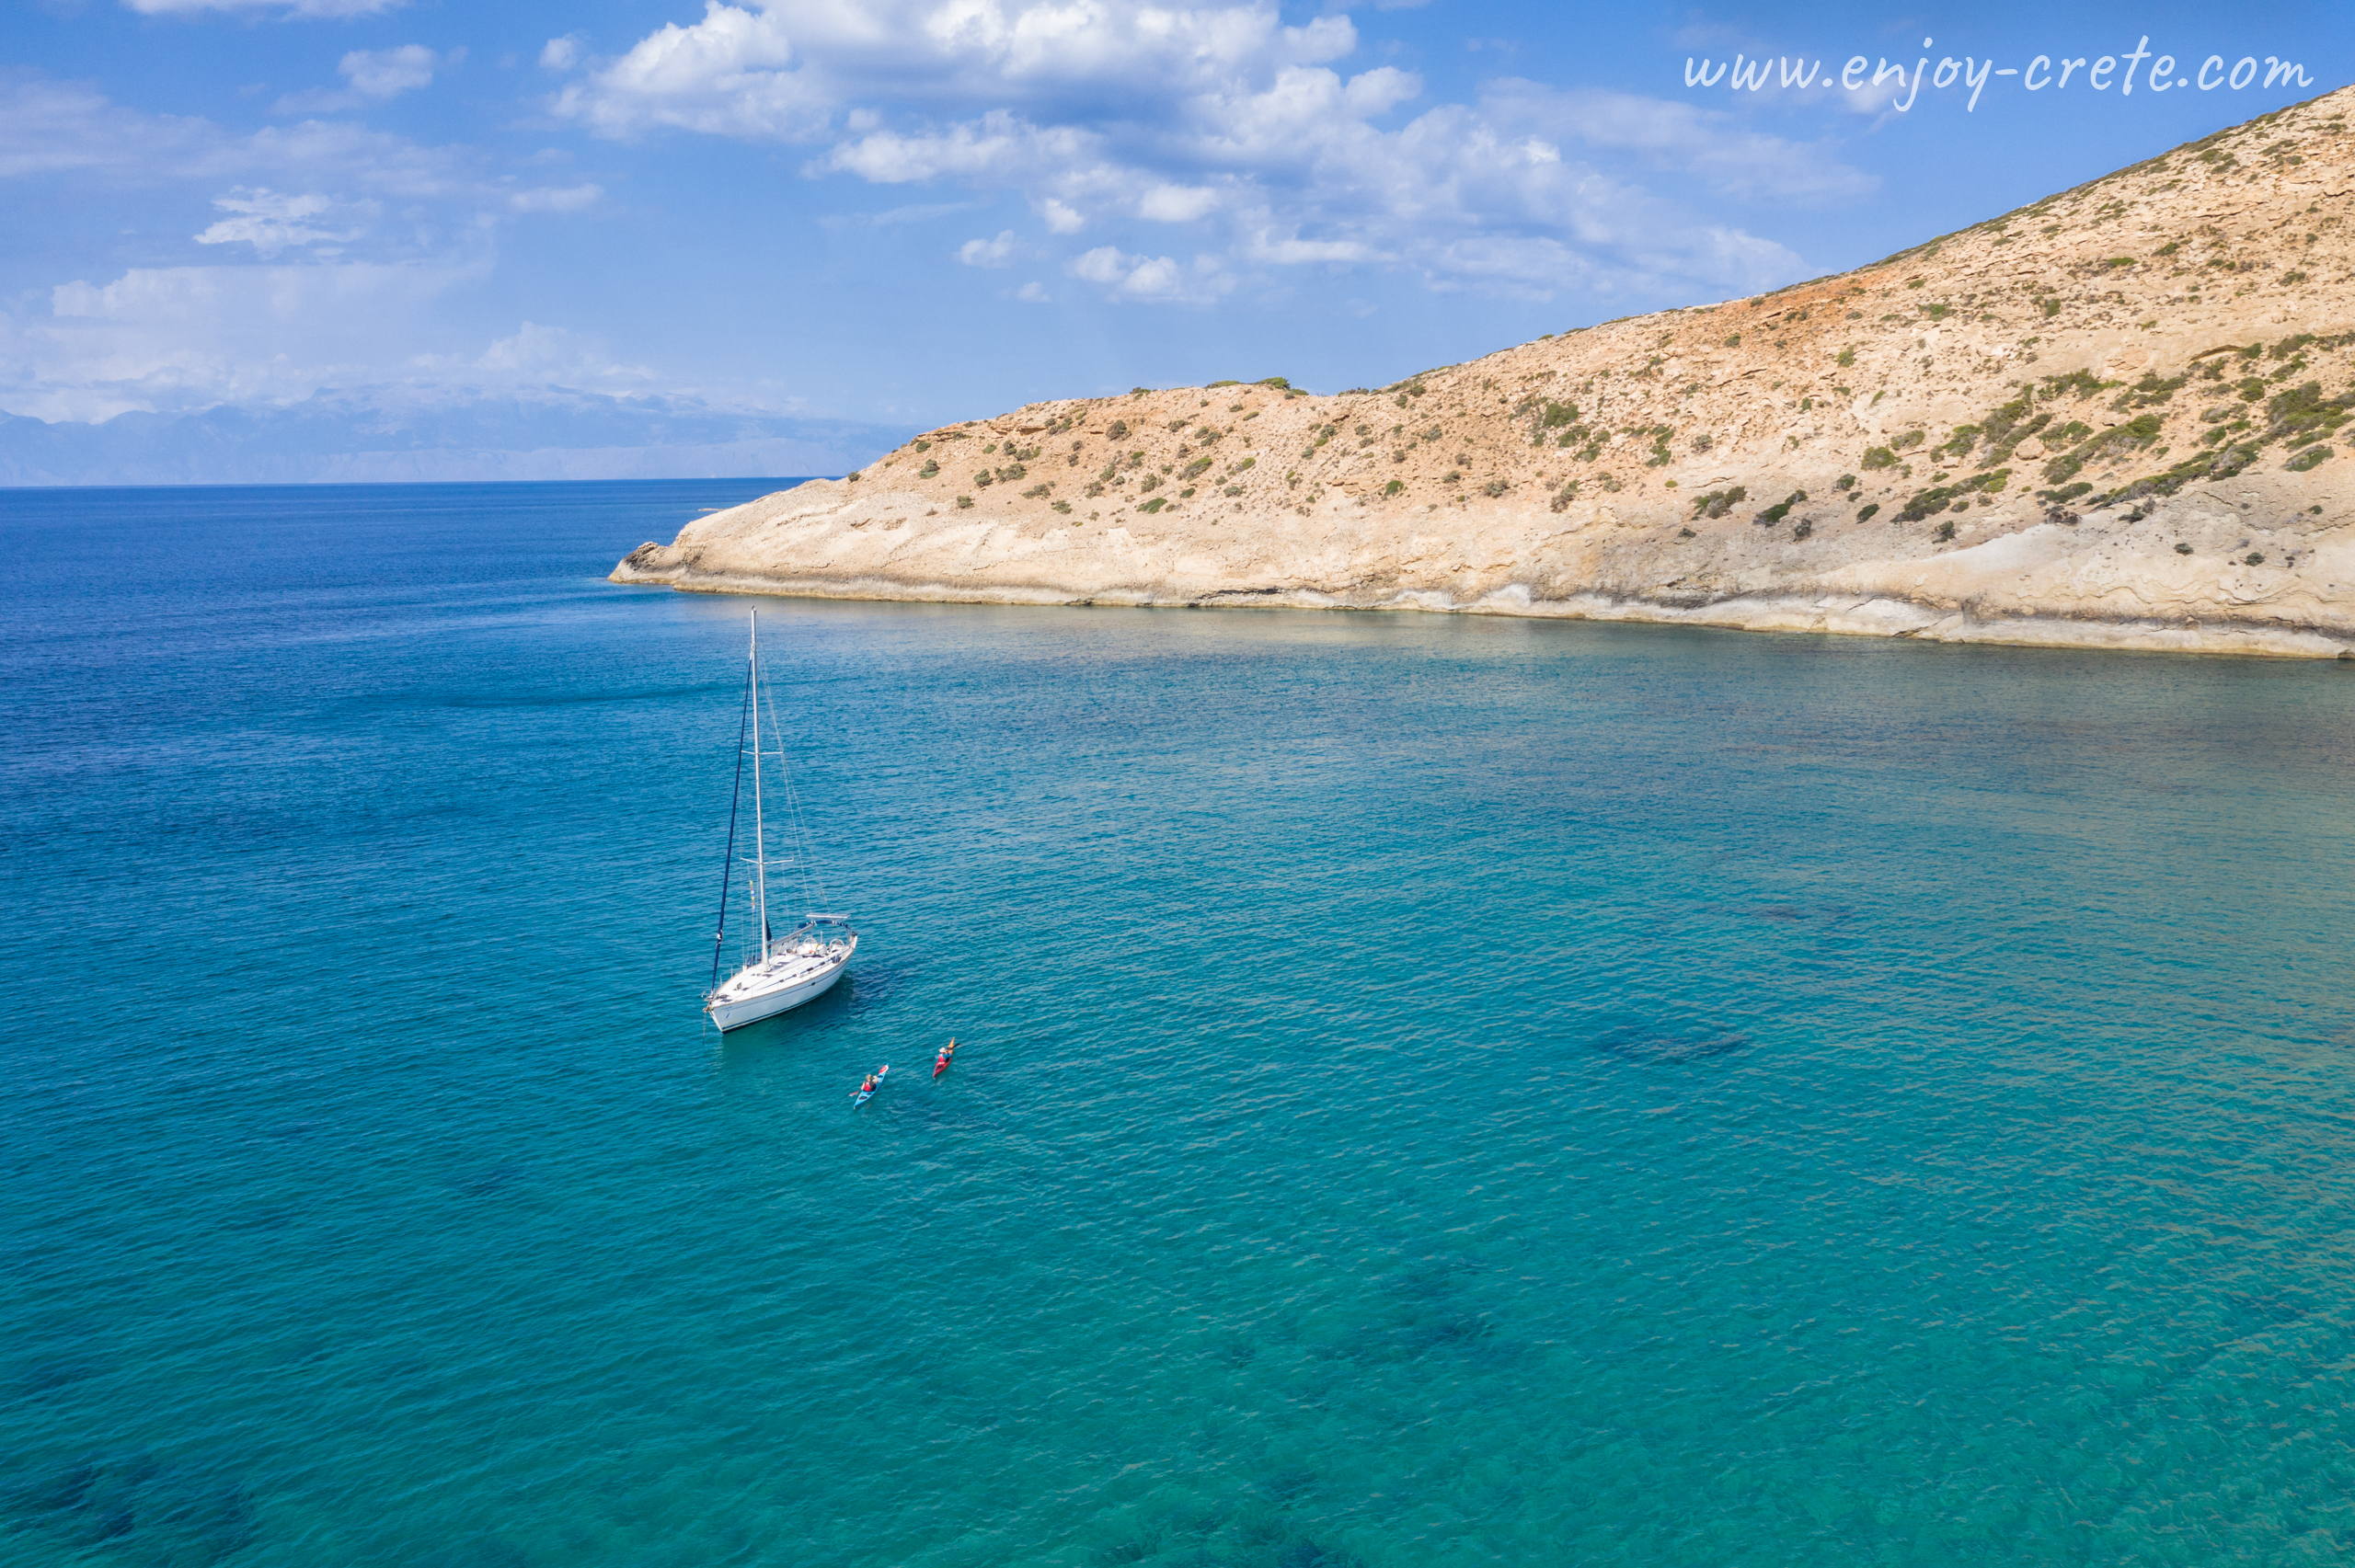 gavdos island travel guide, gavdos island chania crete, beaches of gavdos, where to stay gavdos, restaurants gavdos, travel tips gavdos, weather gavdos crete, what to do gavdos, accommodation gavdos, ferries gavdos crete, boat trip gavdos